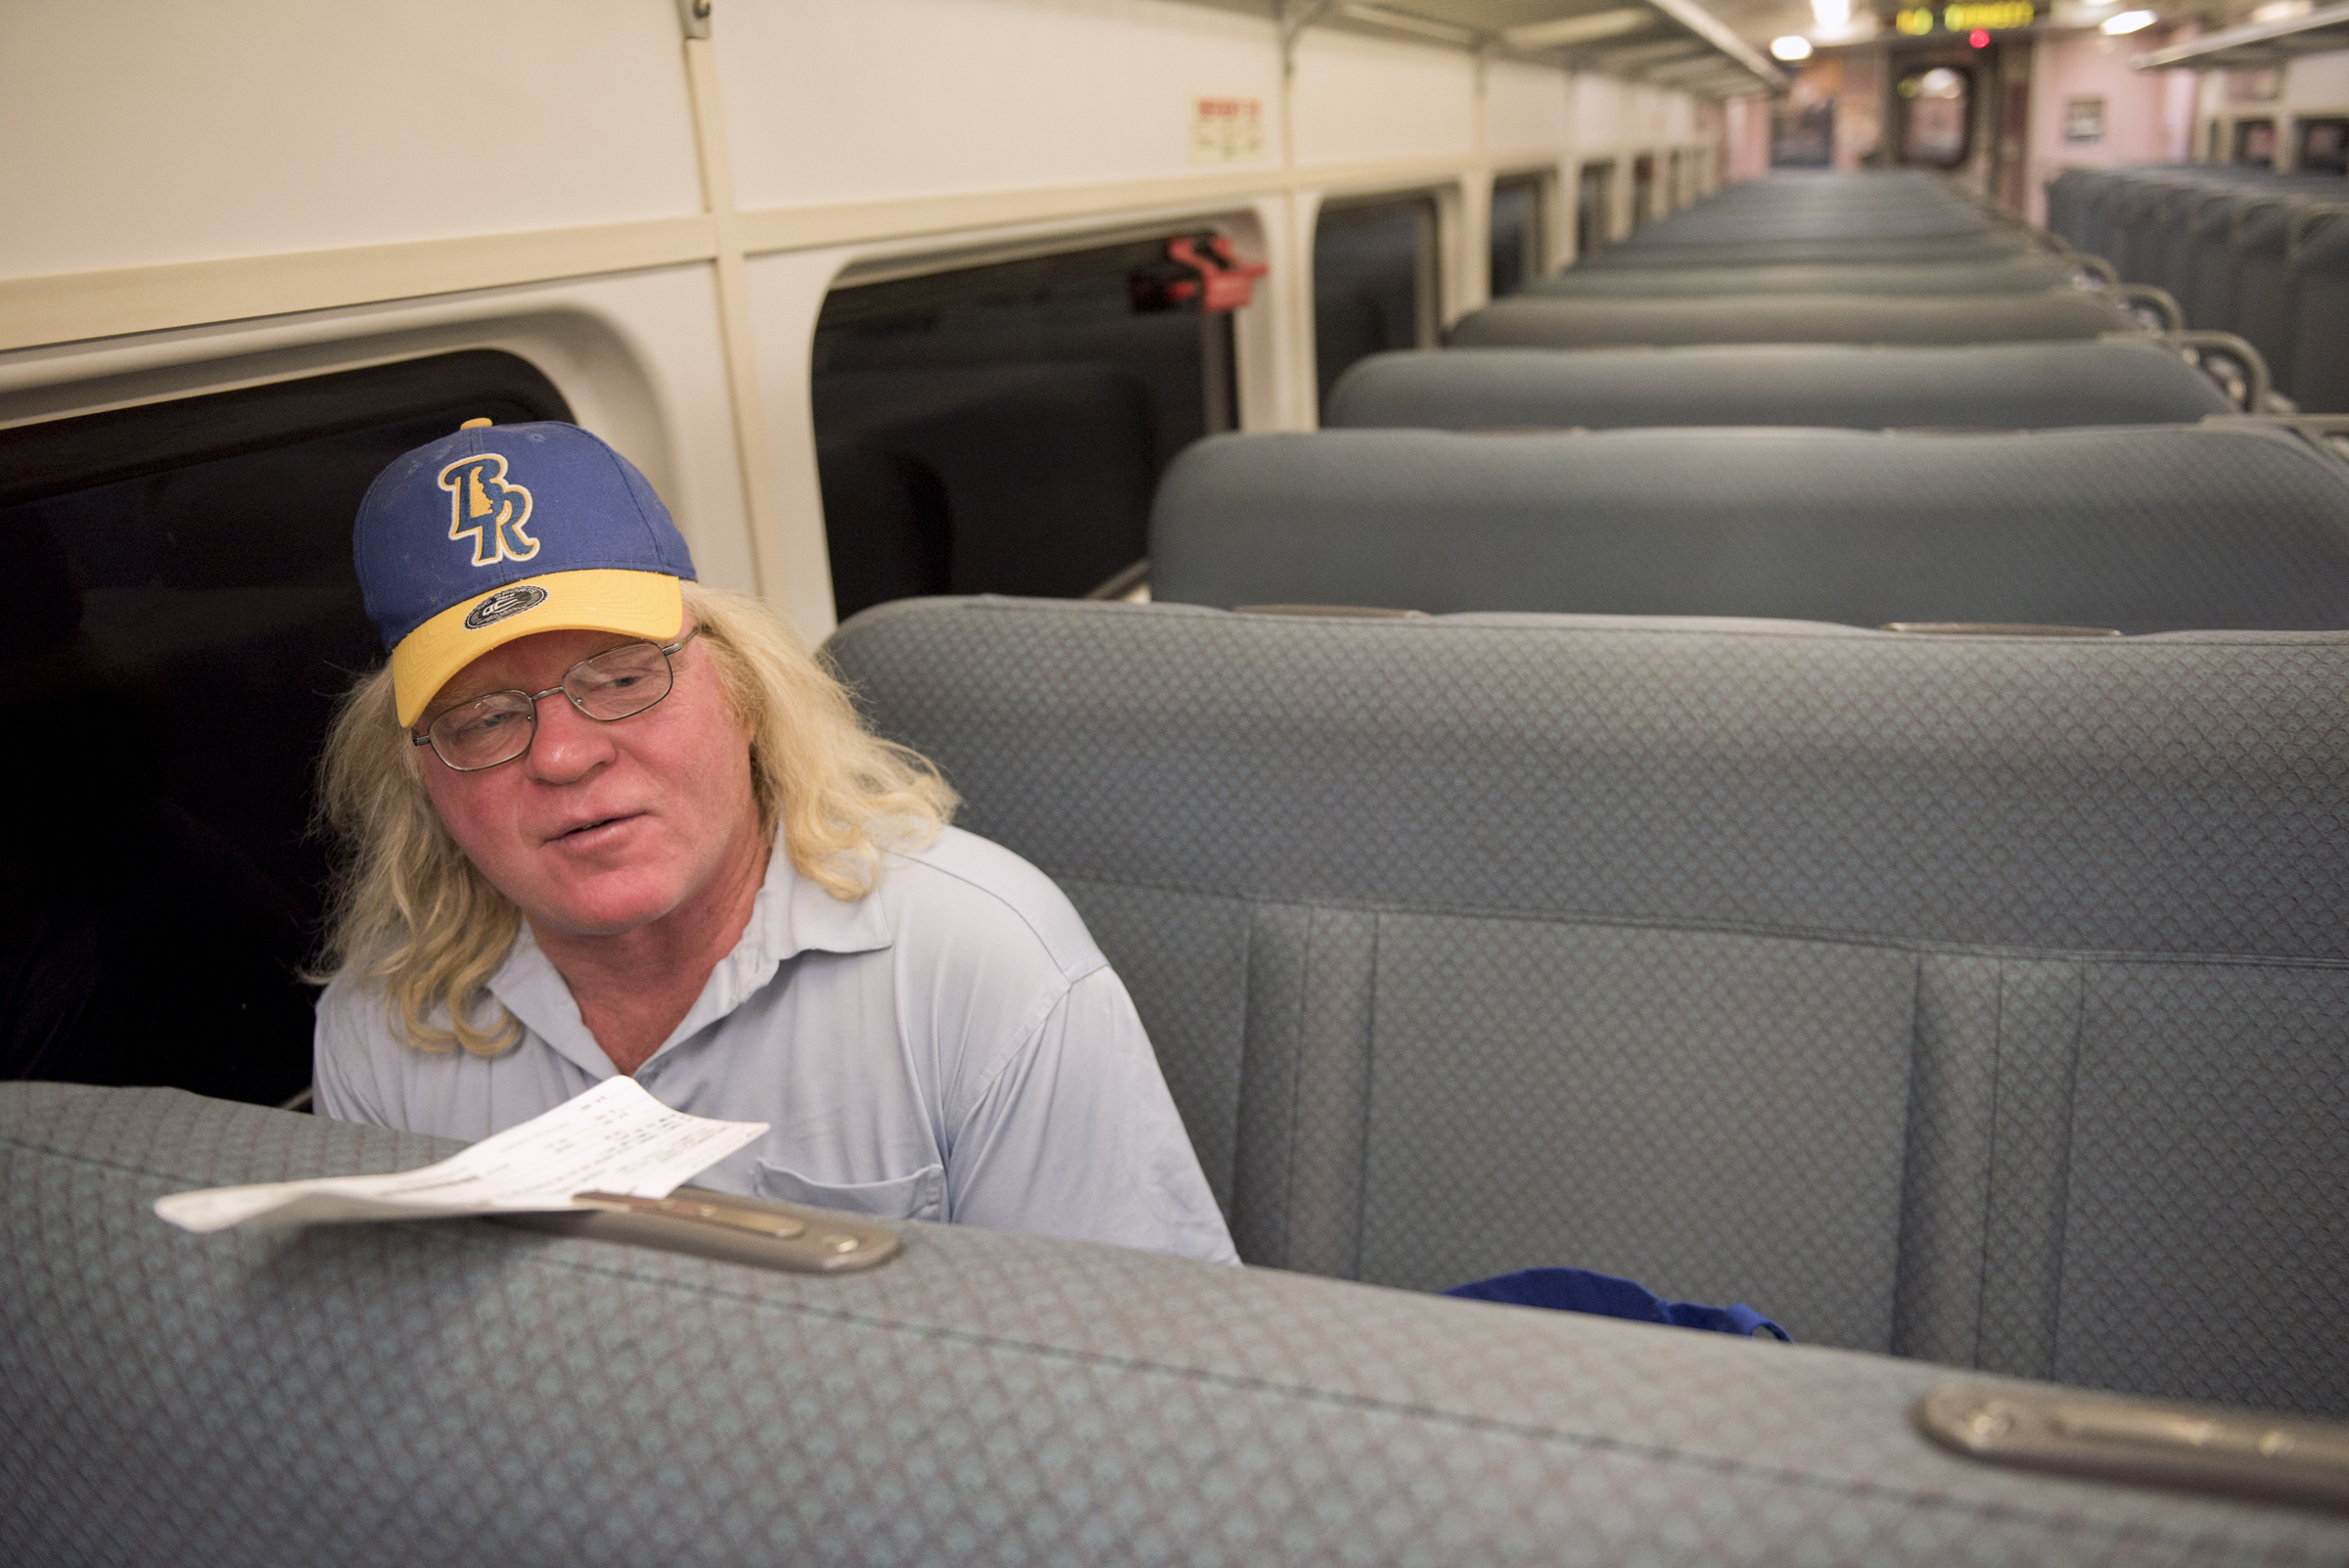 Michael Wilkowski of Philadelphia rides the New Jersey Transit Atlantic City Rail Line Thursday August 9, 2018. The line which runs between Philadelphia and Atlantic City is slated for a 5 month suspension. Avi Steinhardt / For the Inquirer